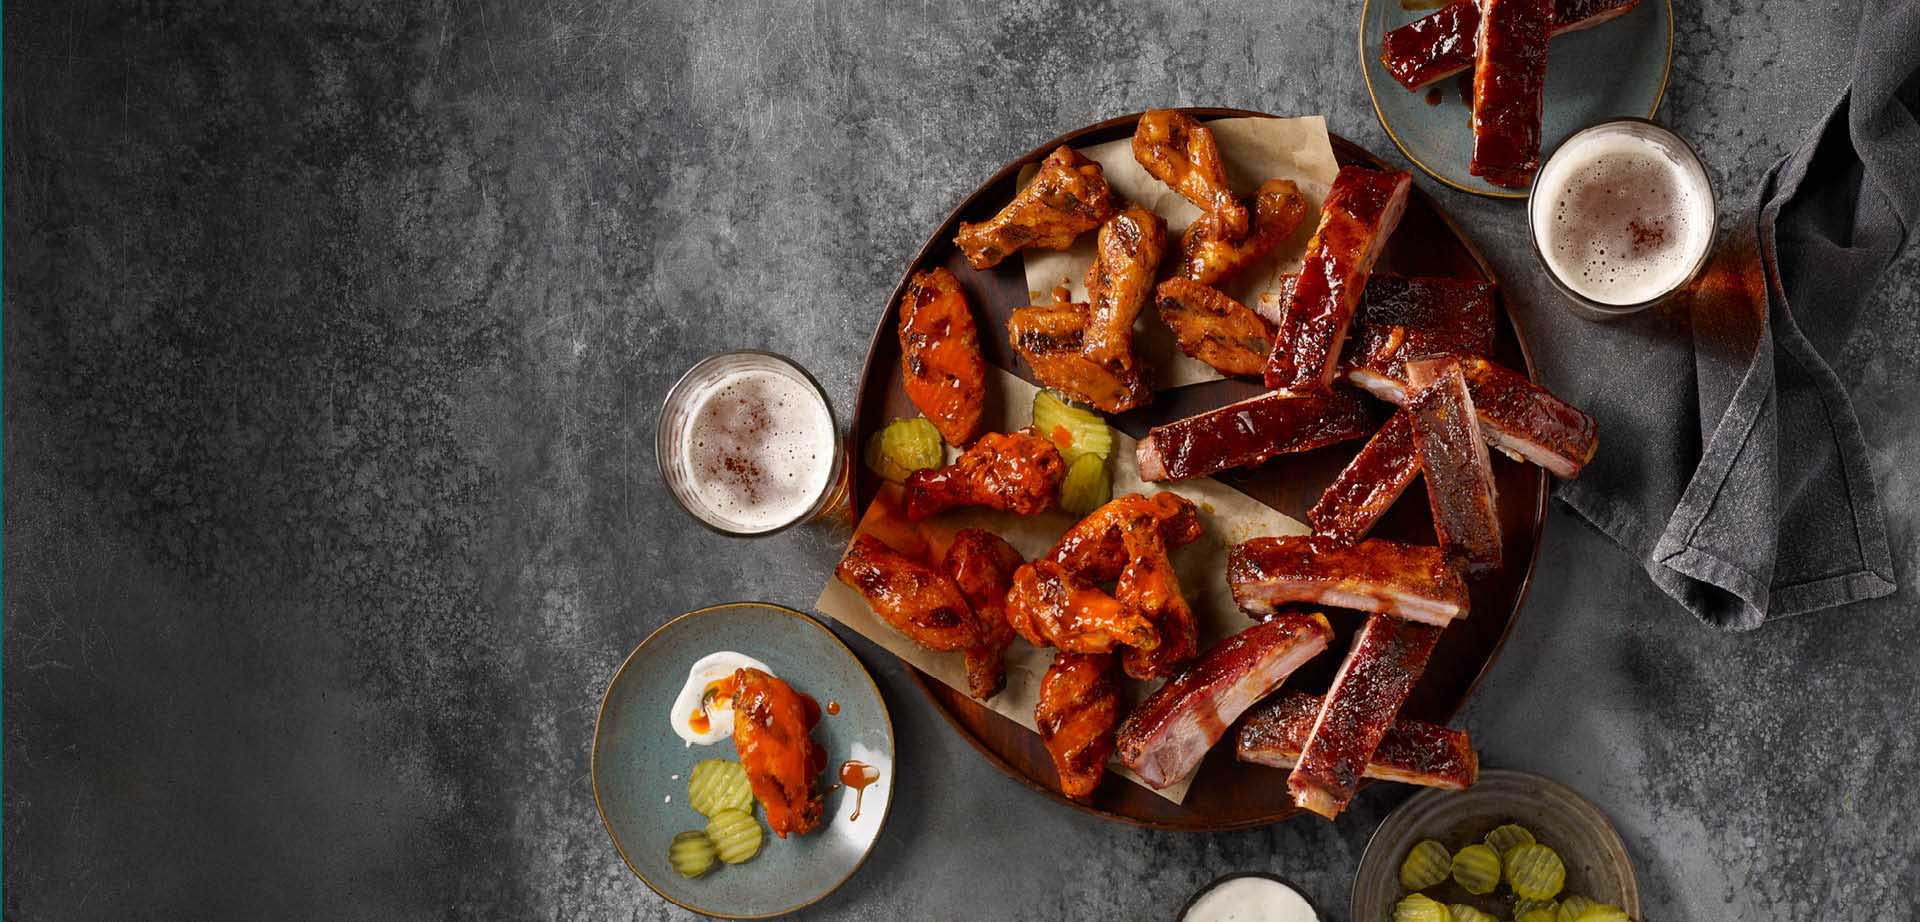 Pit-Smoked Ribs & Wings Delivery